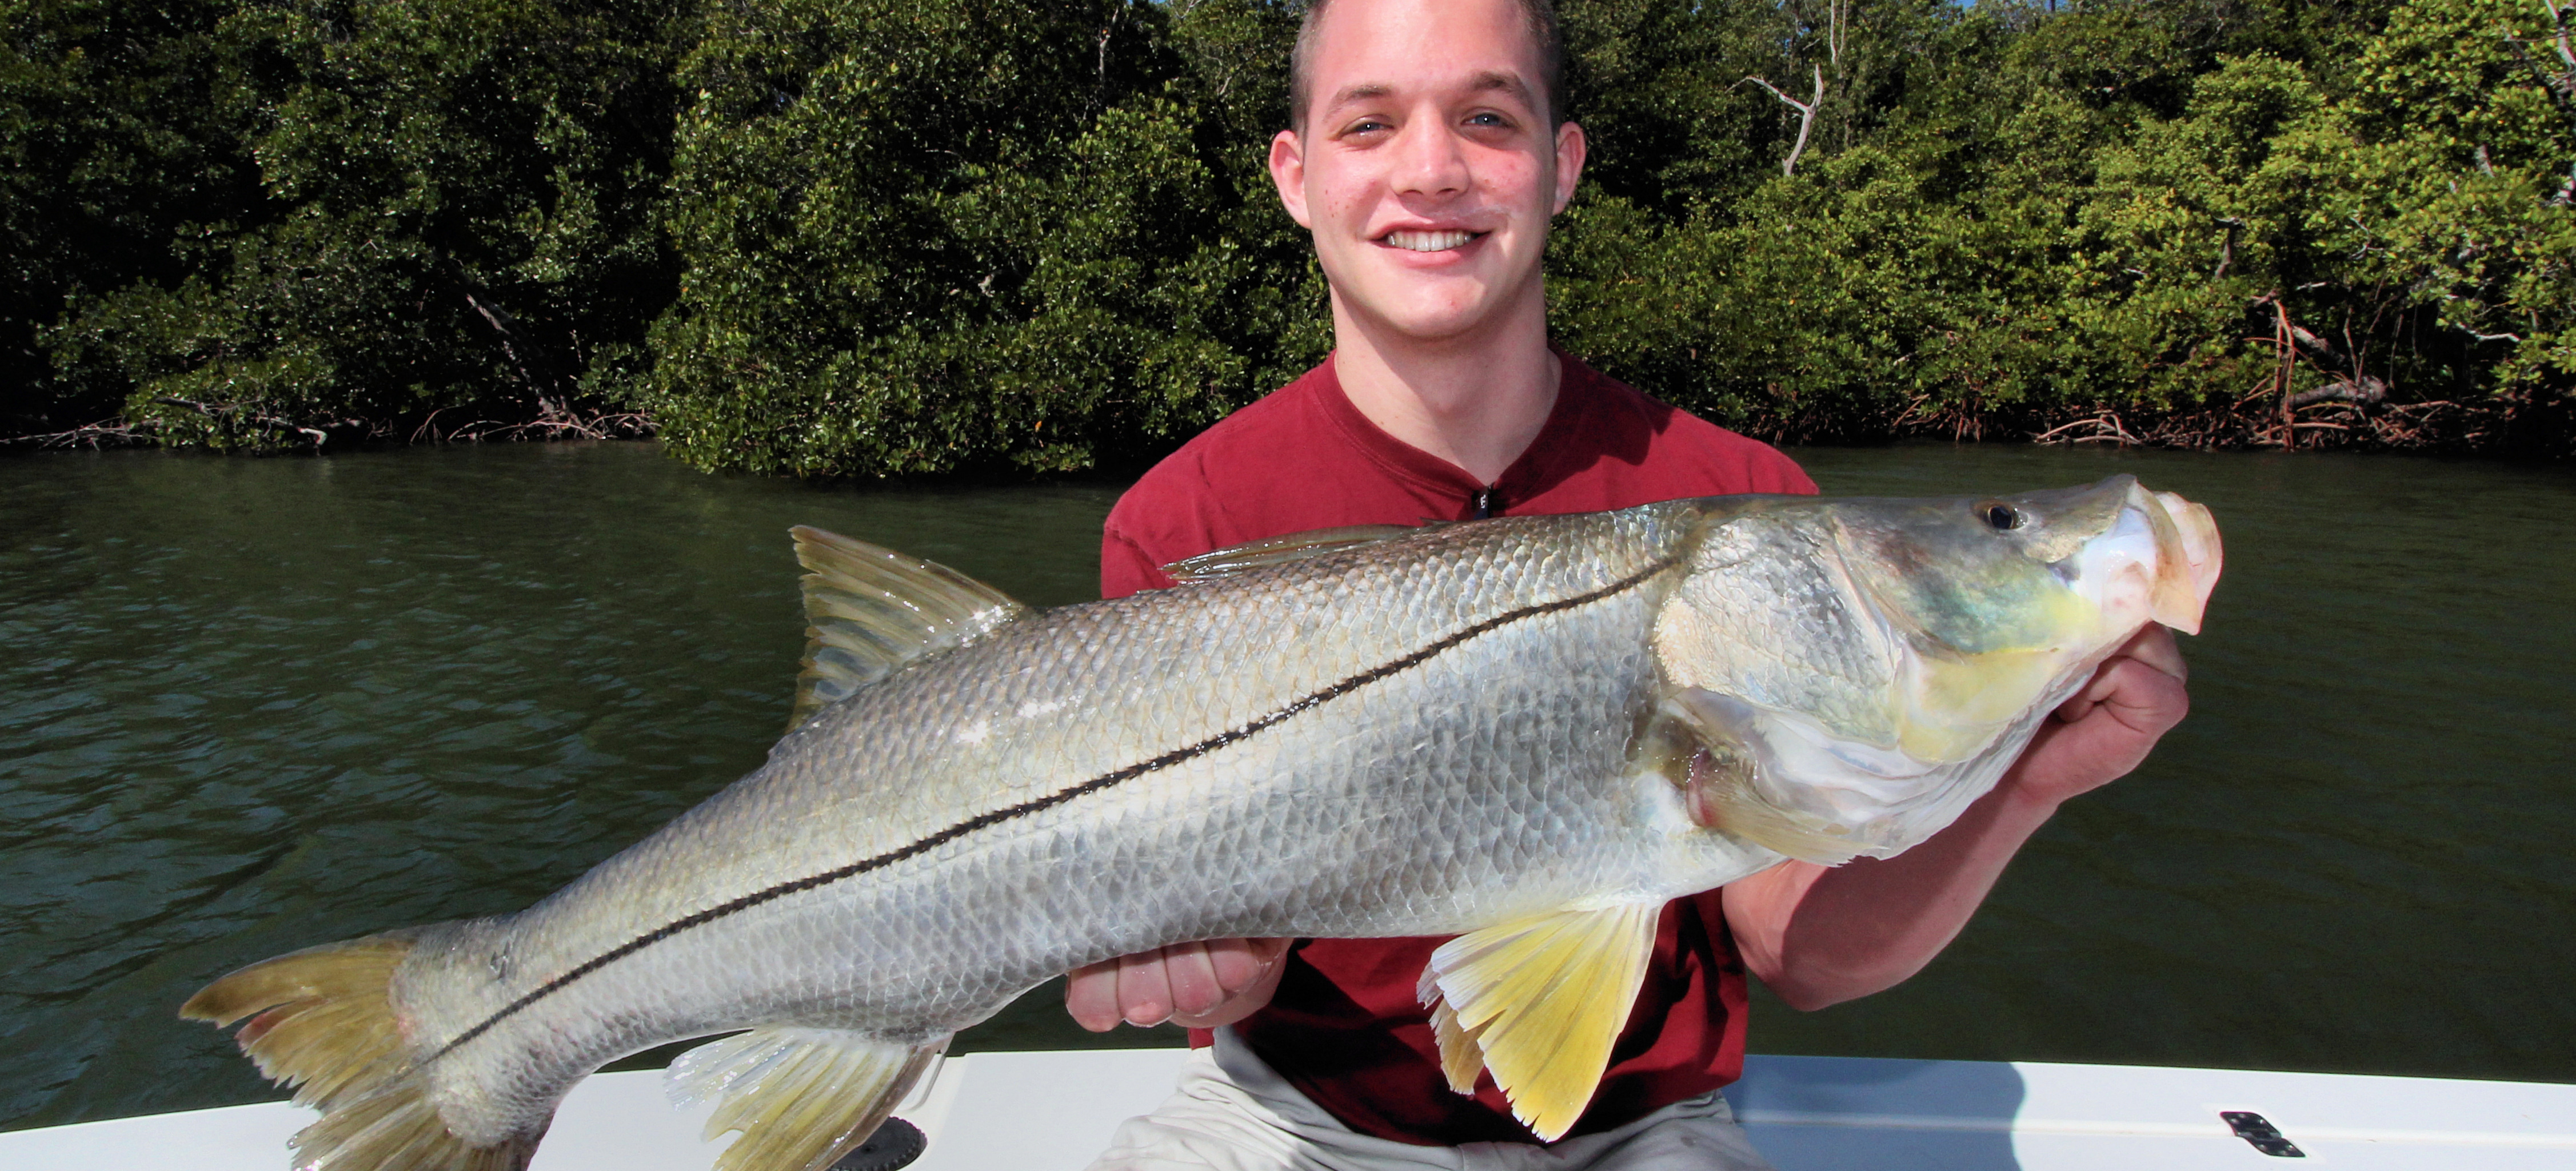 Sanibel island fishing charters snook sanibel fishing for Sanibel island fishing charters